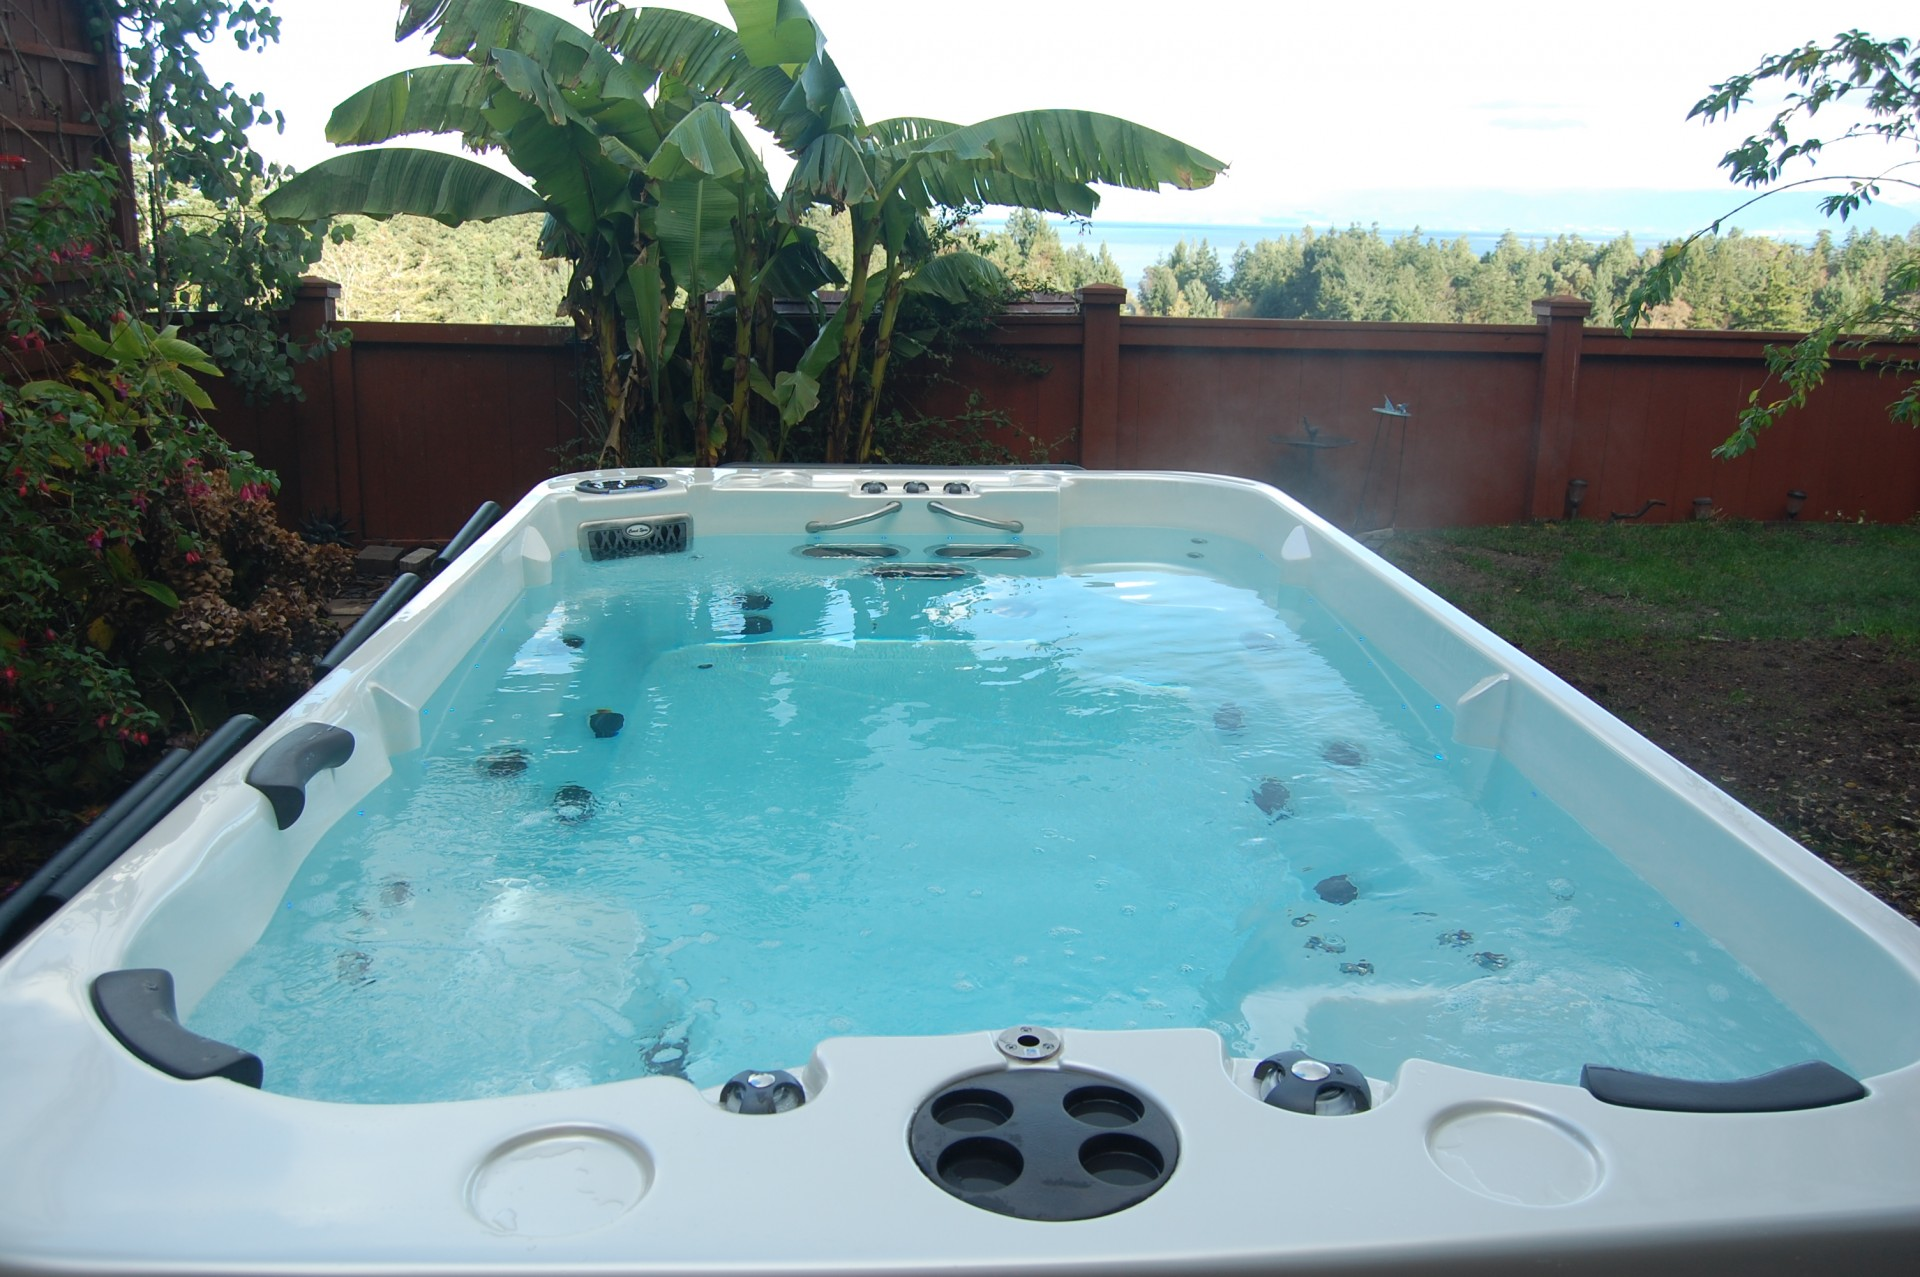 tub winter thrillist to up cuomoscove home tubs heat portland franklinhottub best the outdoor hot your